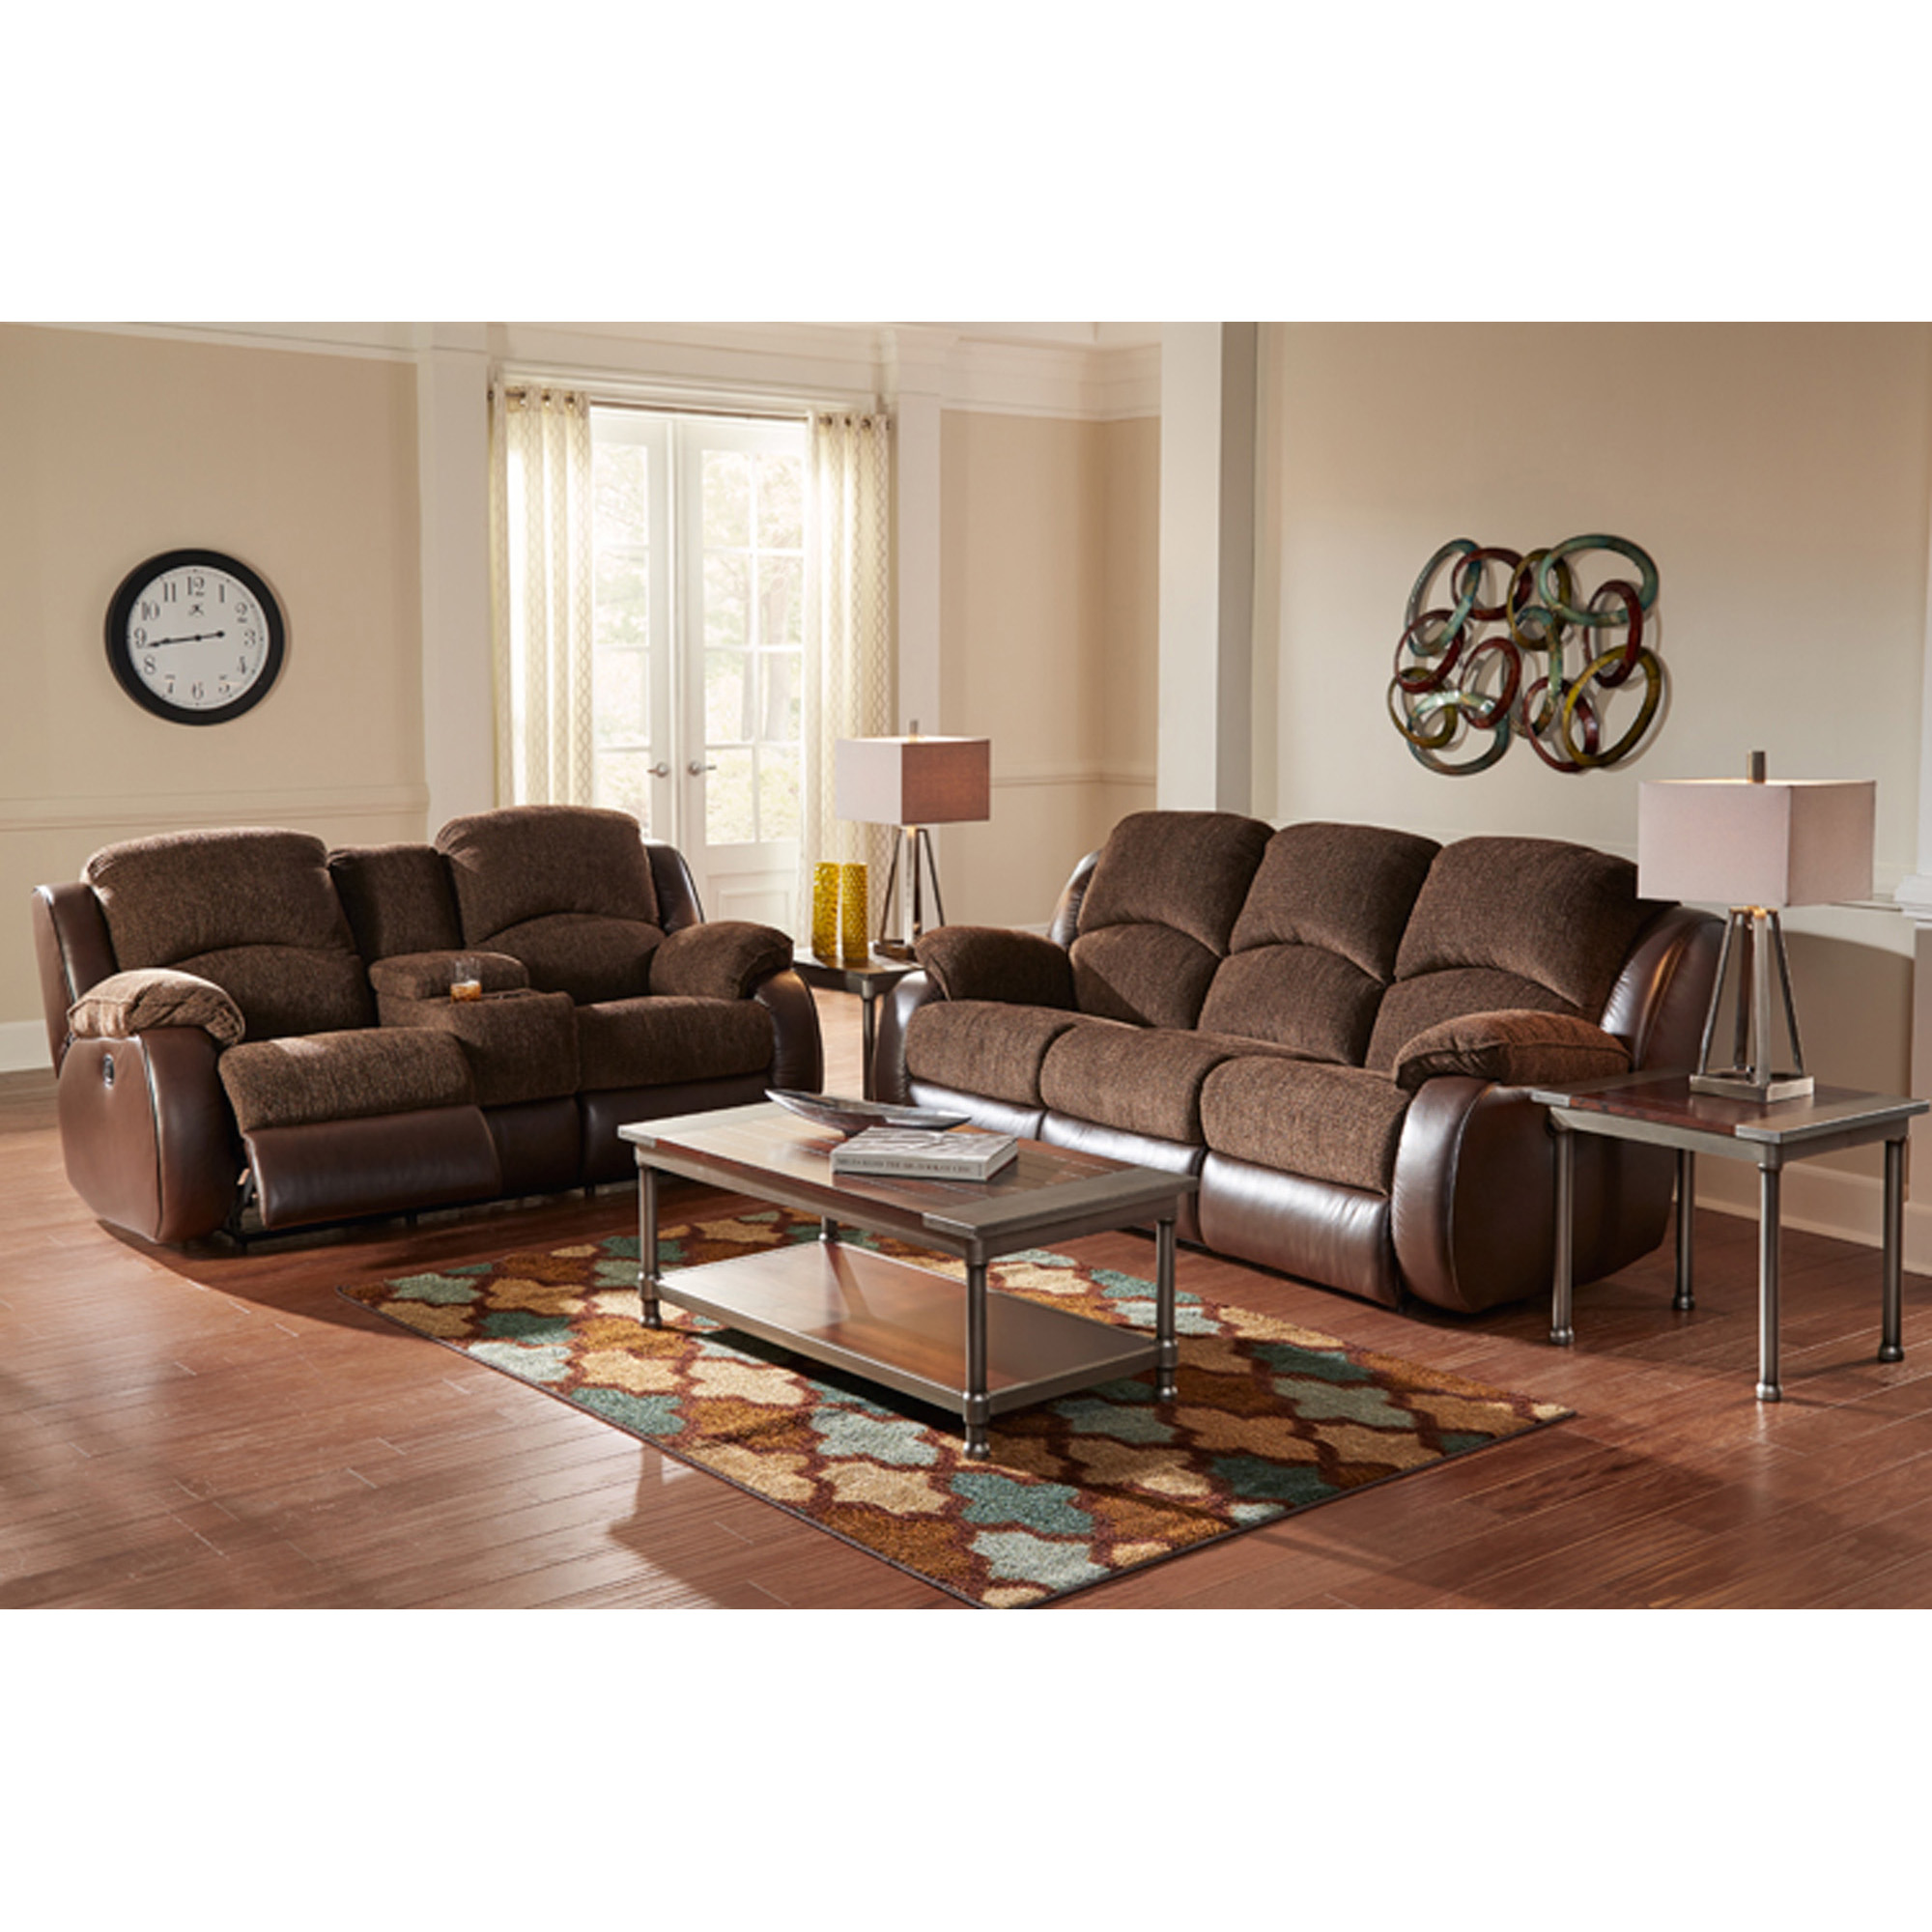 Rent To Own Woodhaven 7 Piece Memphis Reclining Living Room Collection At Aaron S Today